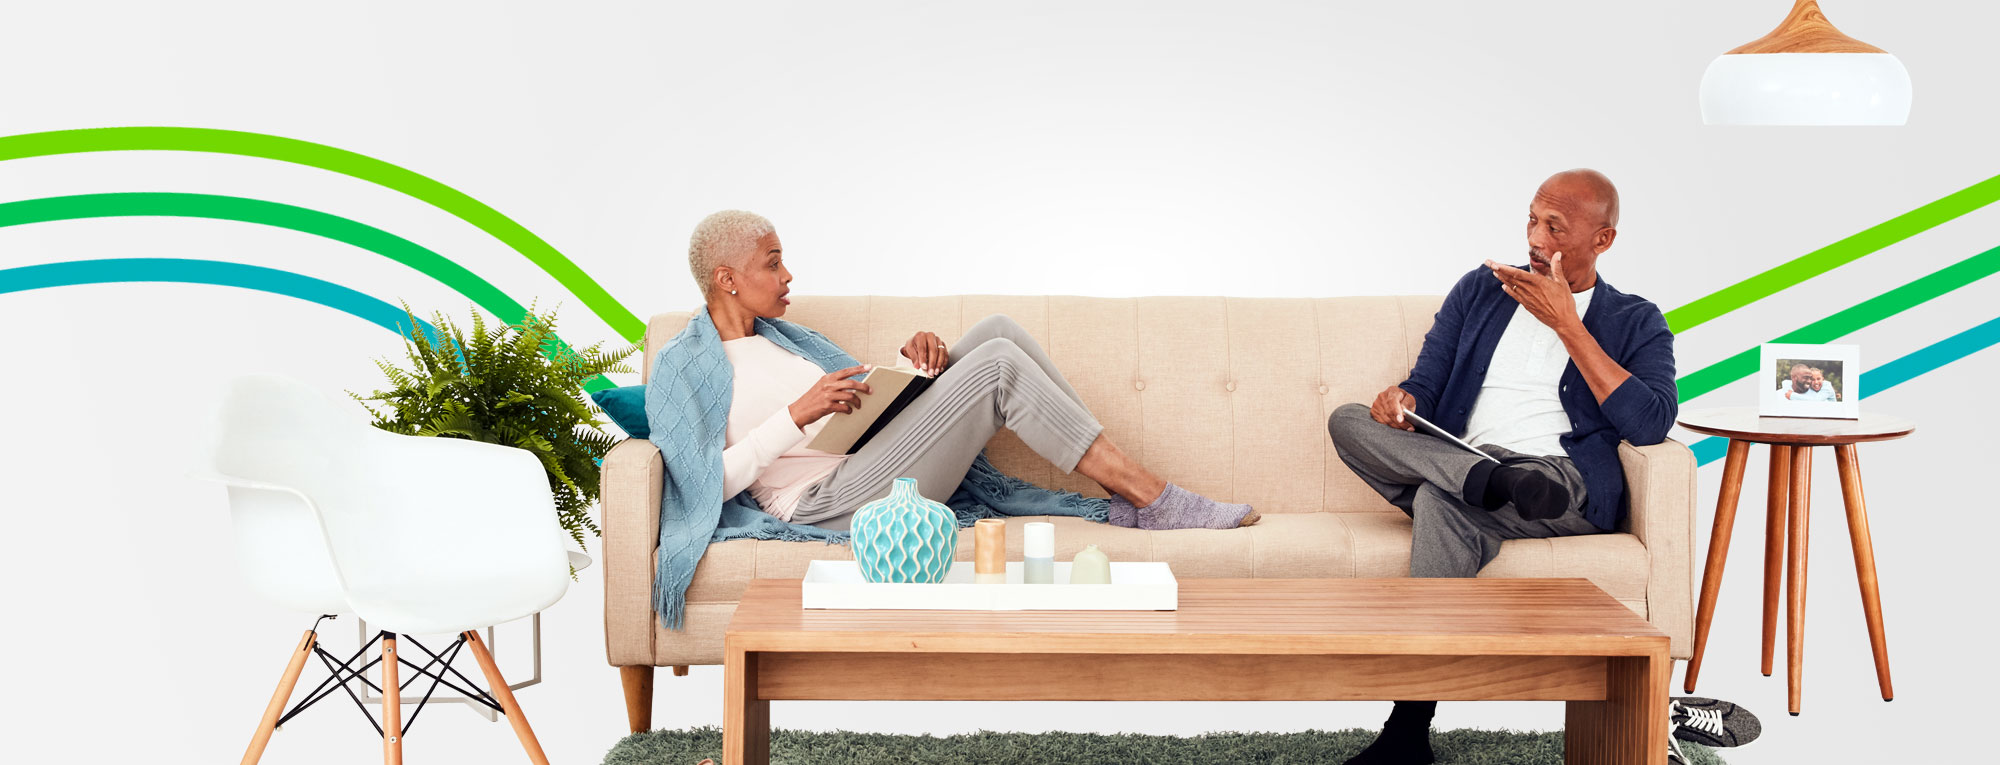 5 Ways an Estate Plan Protects Your Family | Brighthouse